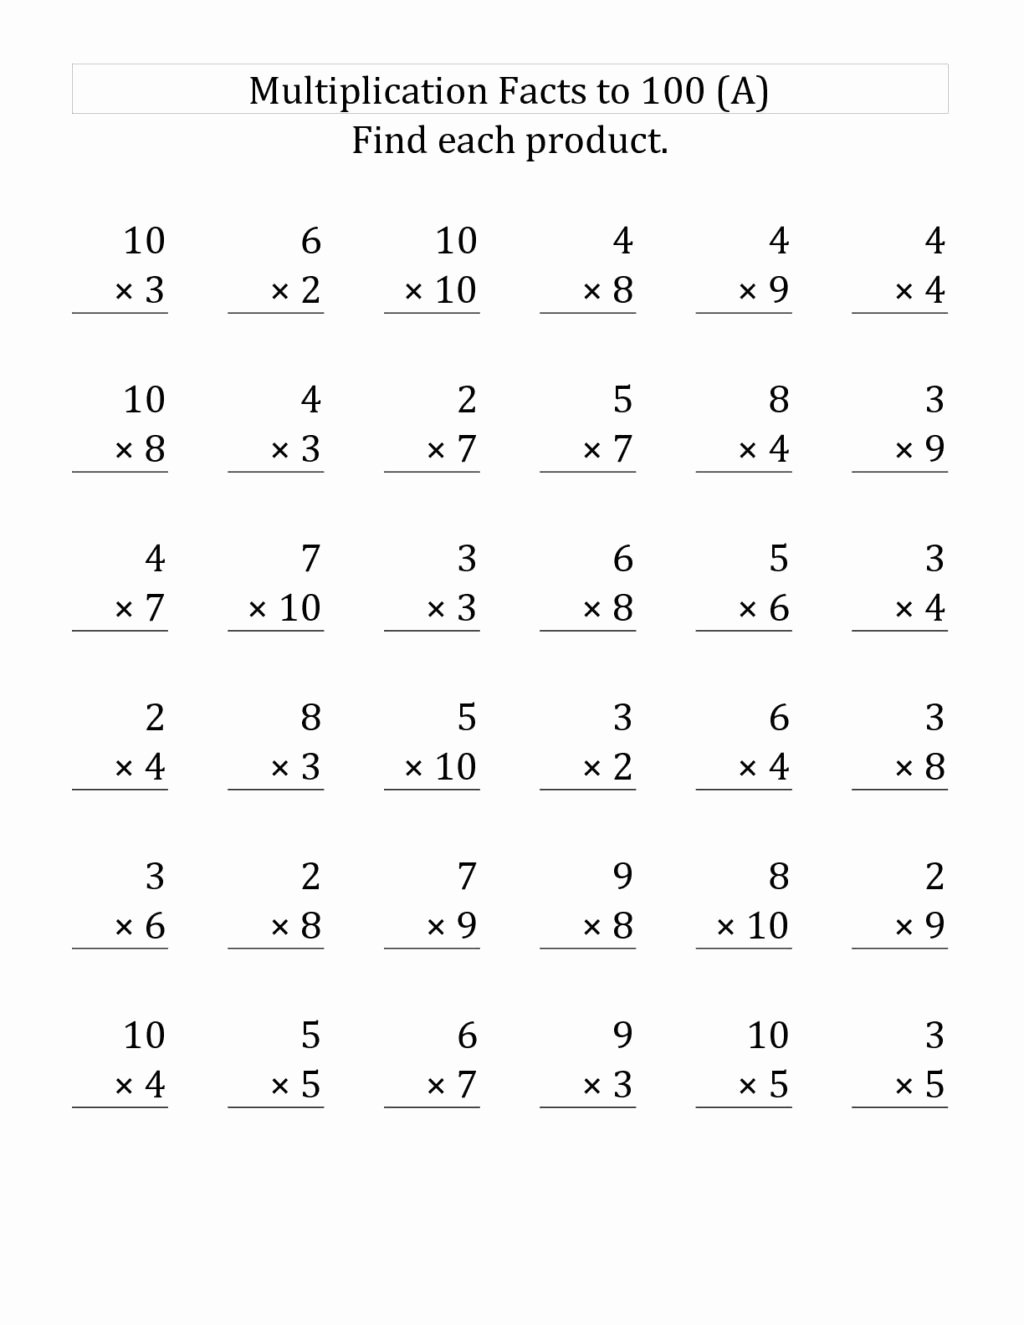 Free Multiplication Worksheets 3rd Grade Printables Inspirational Worksheet 3rd Grade Multiplication Worksheets Awesome Free